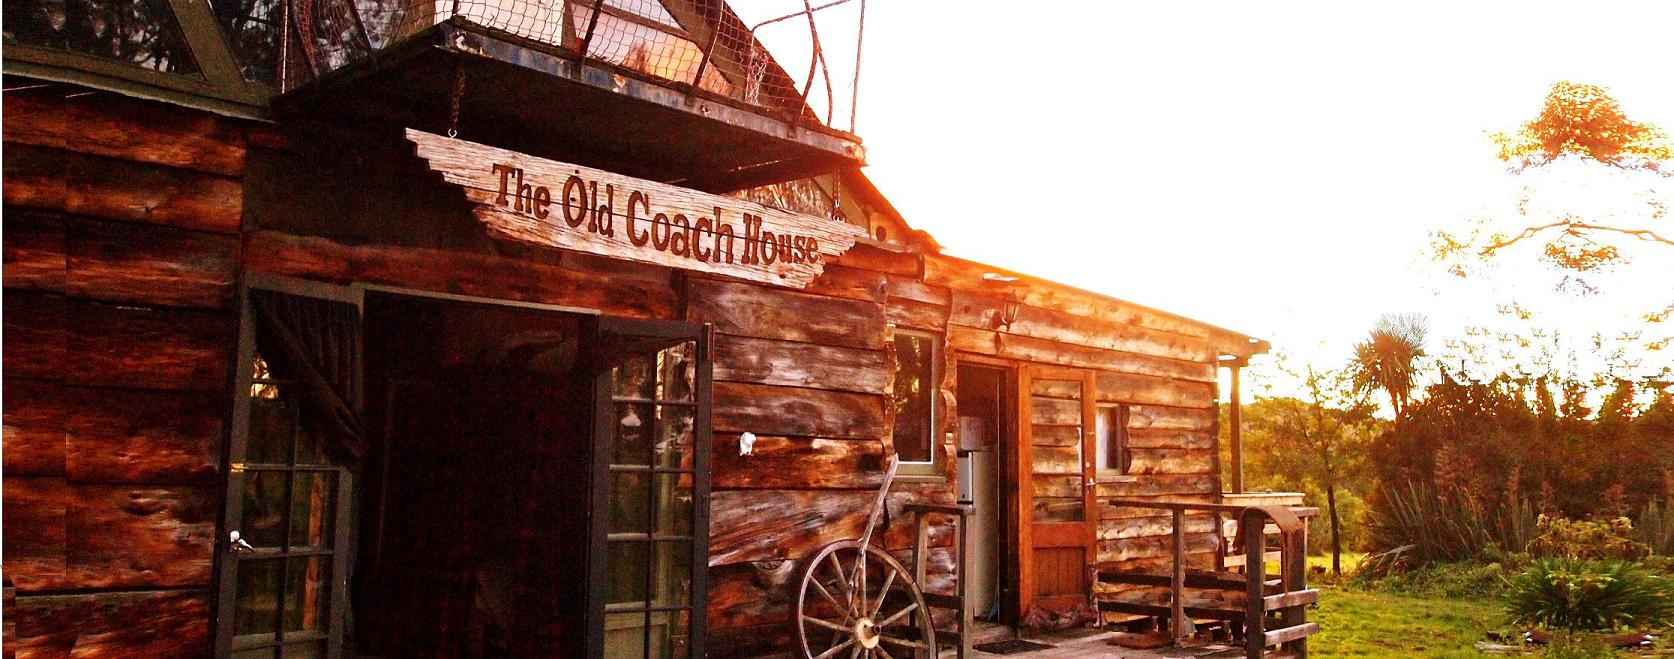 The old coach house   Groups and gatherings